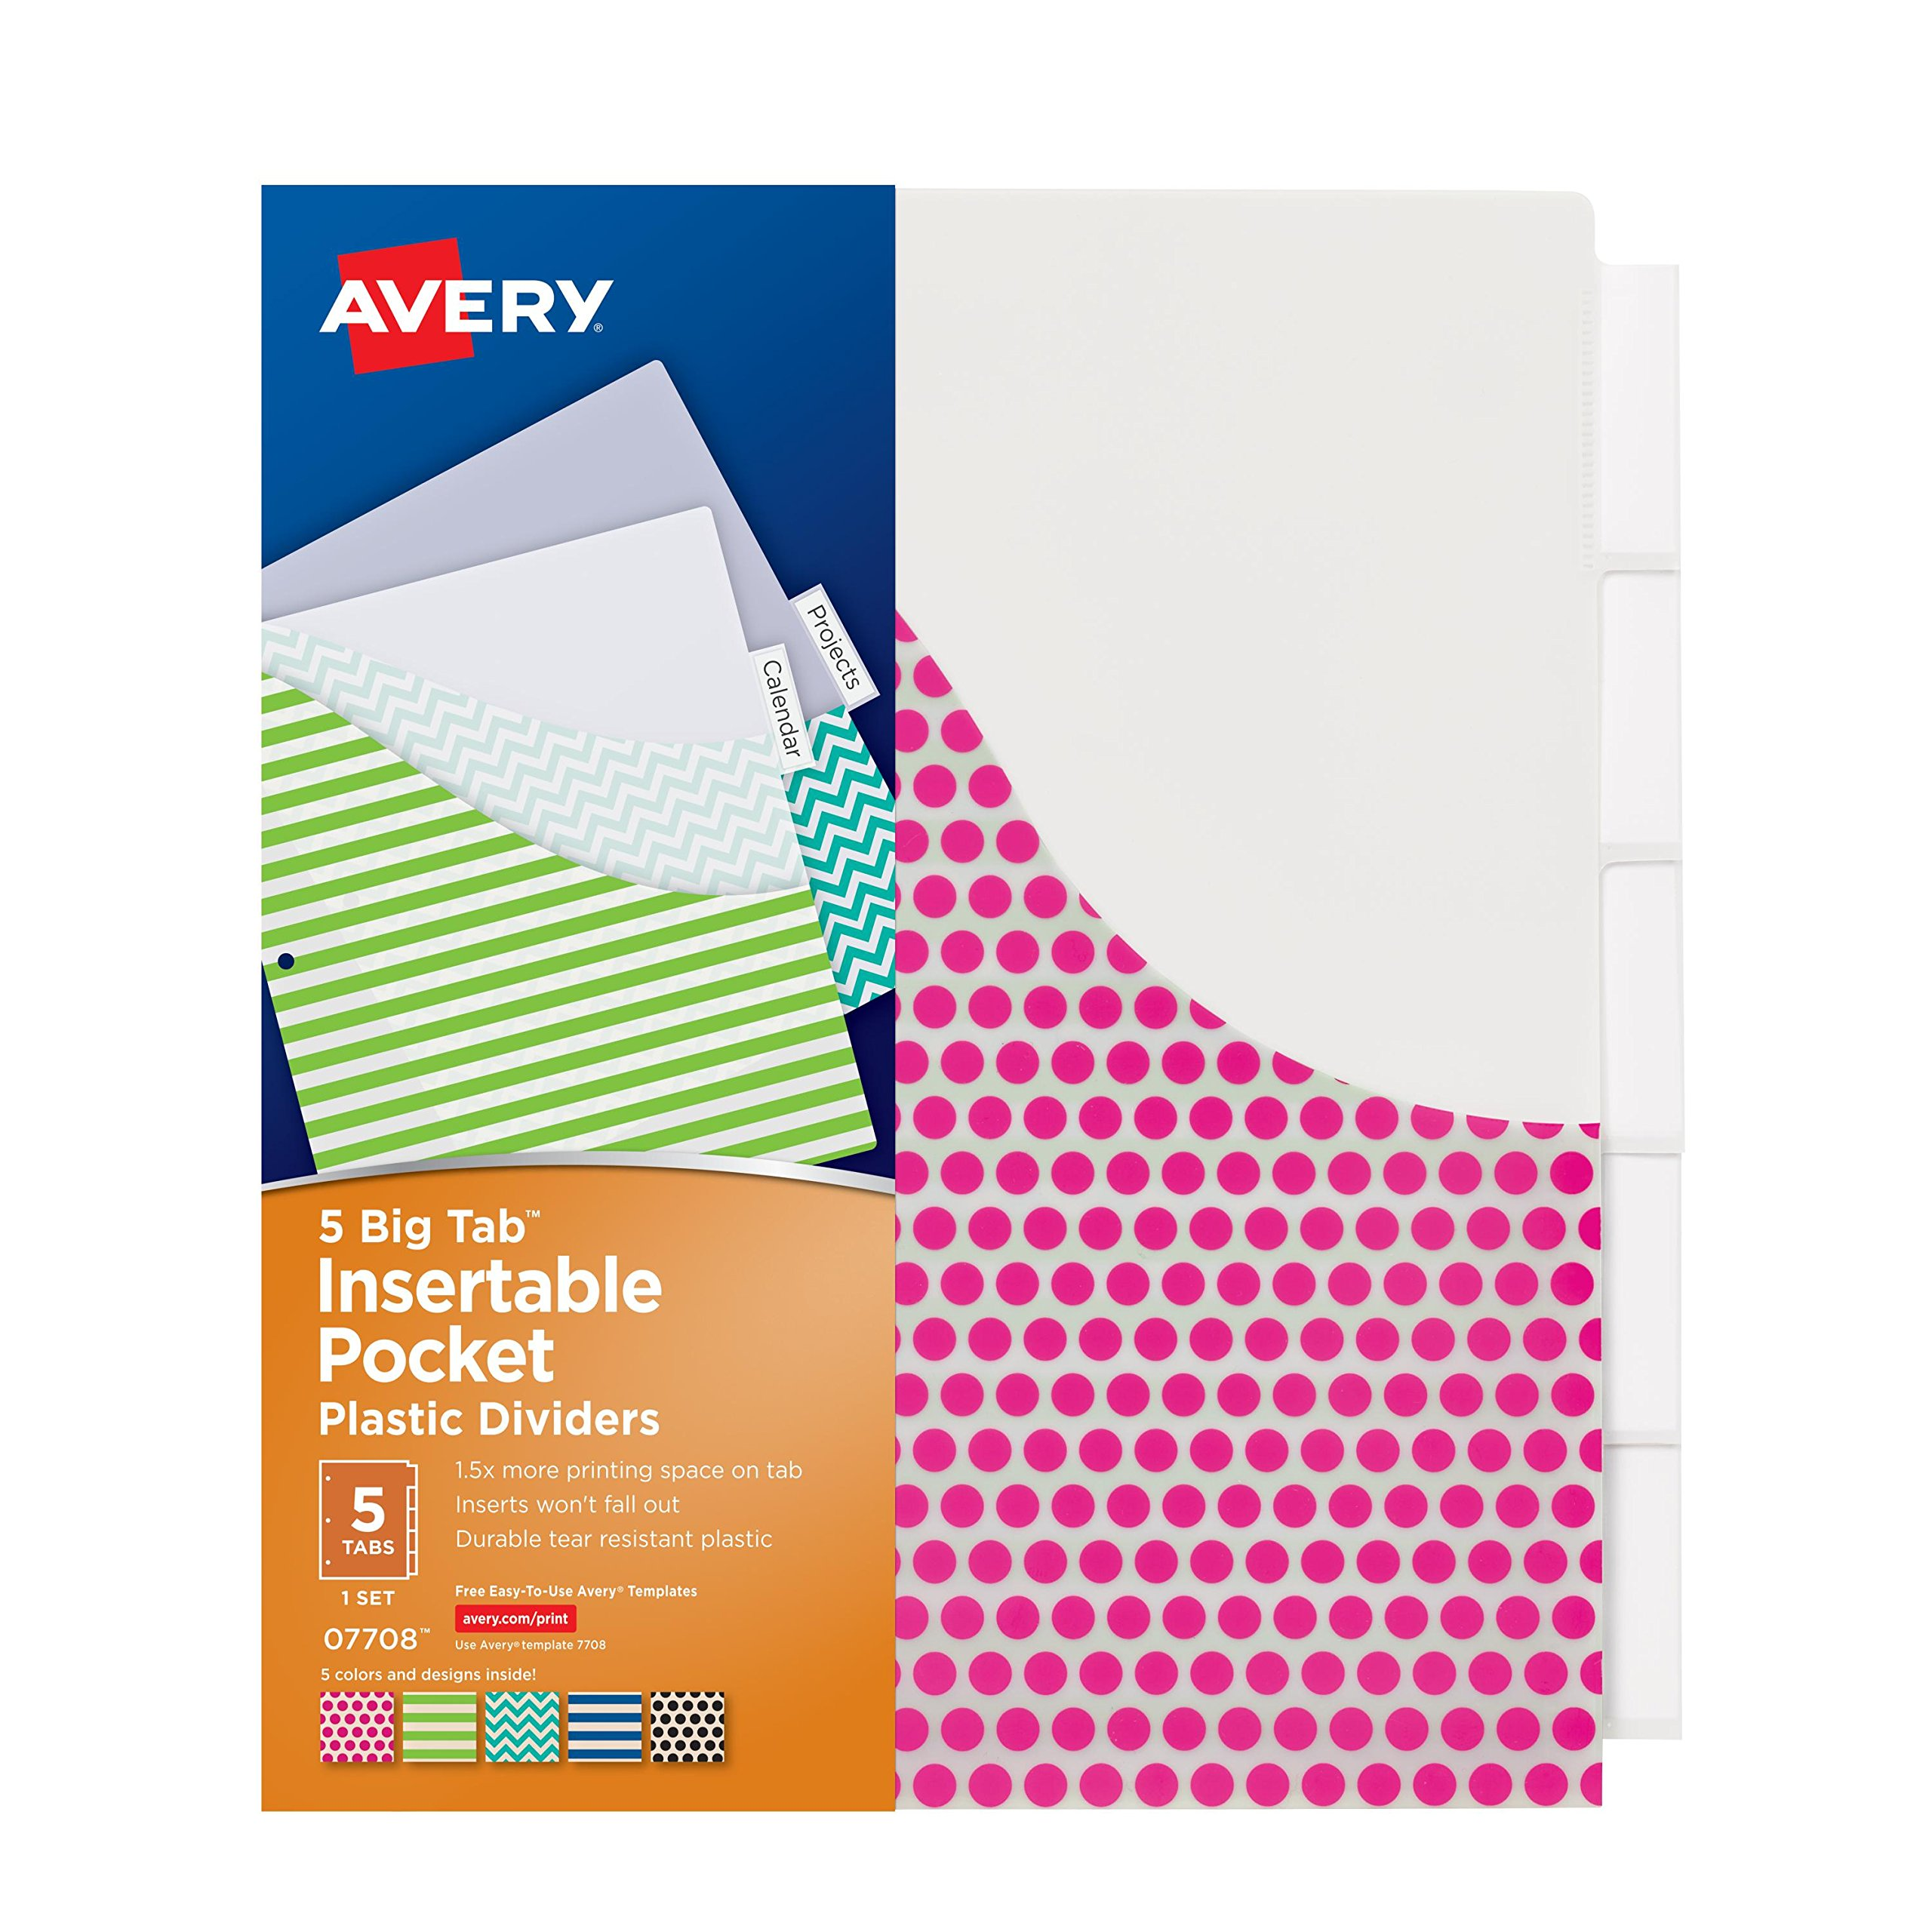 10 tab divider template - galleon avery big tab insertable plastic dividers with